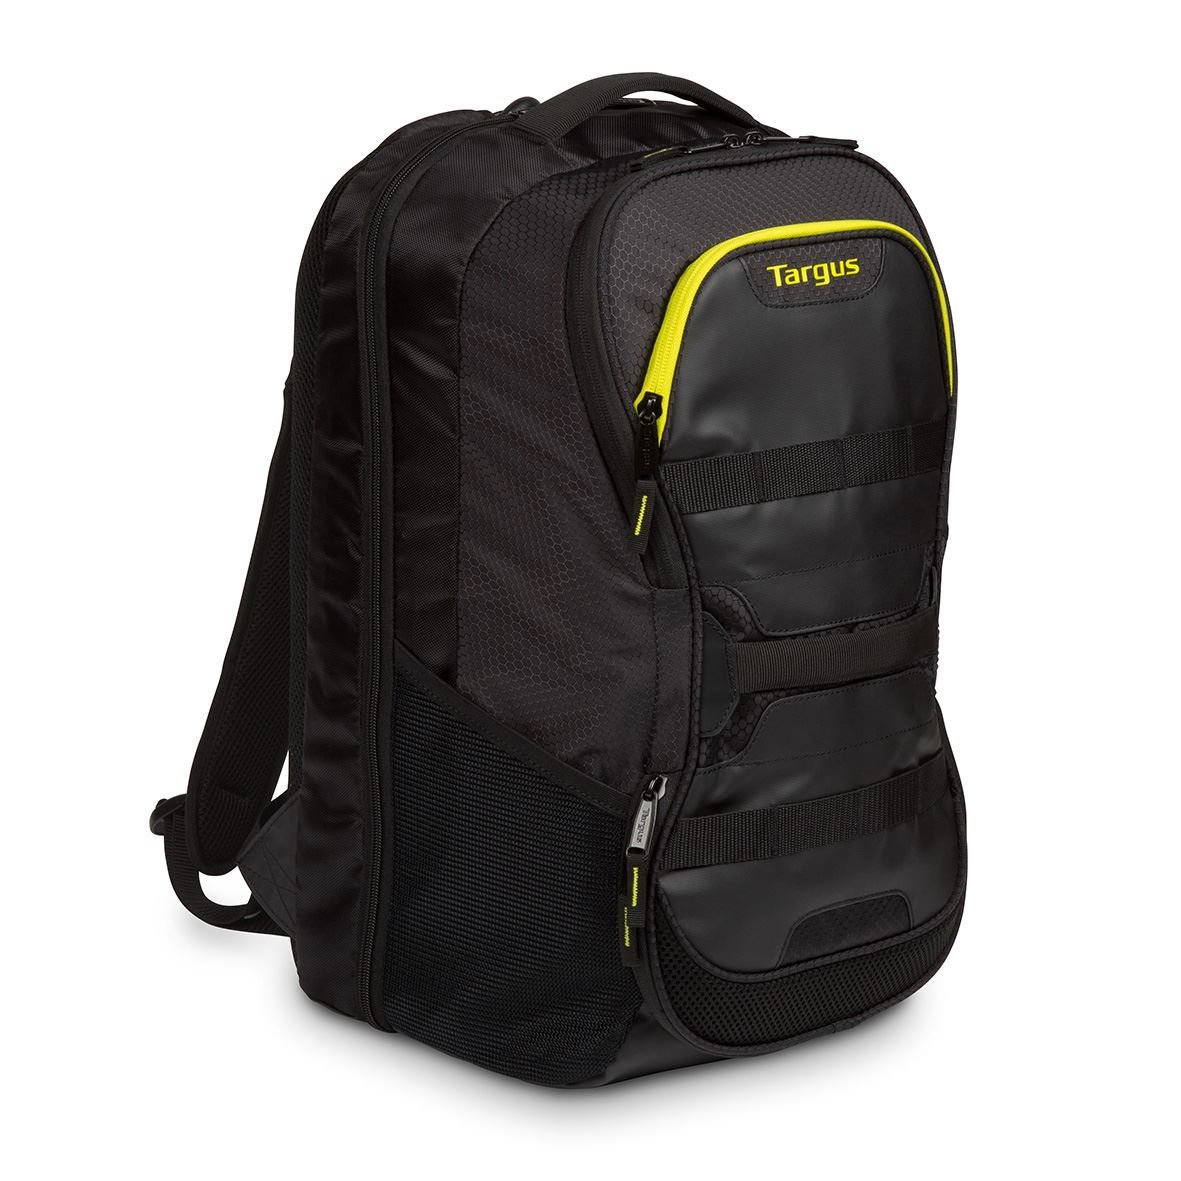 "Targus Work & Play Fitness - Notebook Carrying Backpack - 15.6"" - Black, Yellow TSB944EU - C2000"